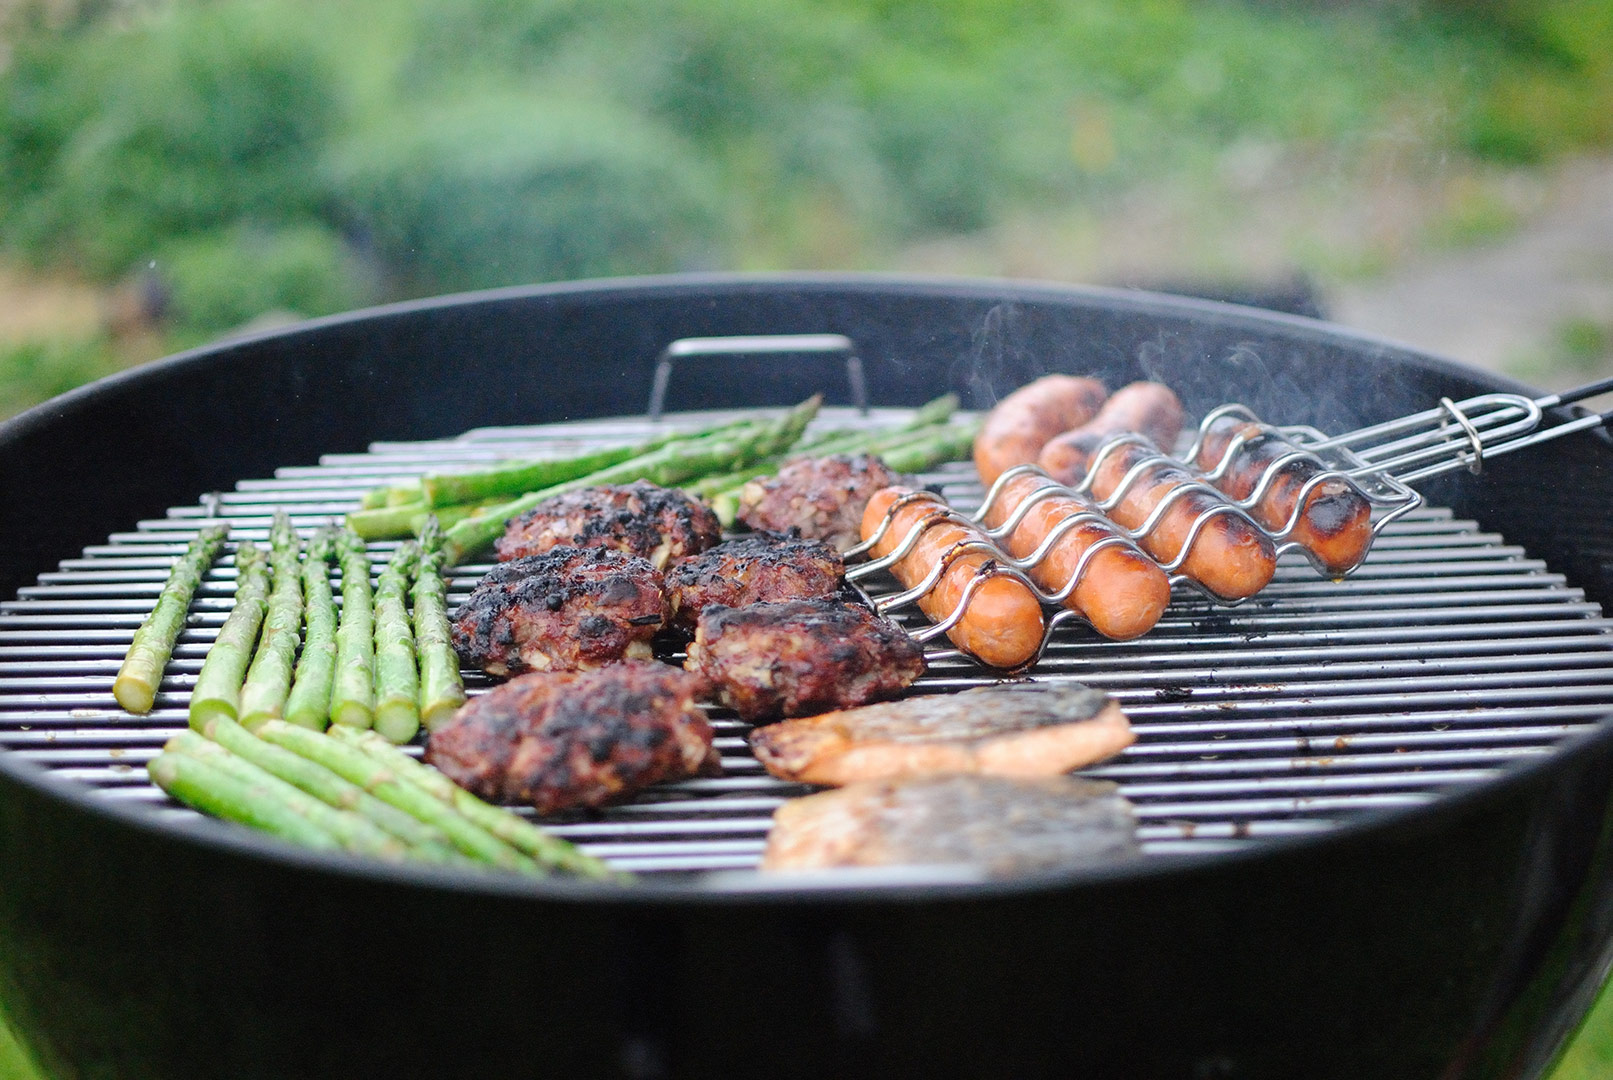 sausages burgers and asparagus on a barbecue